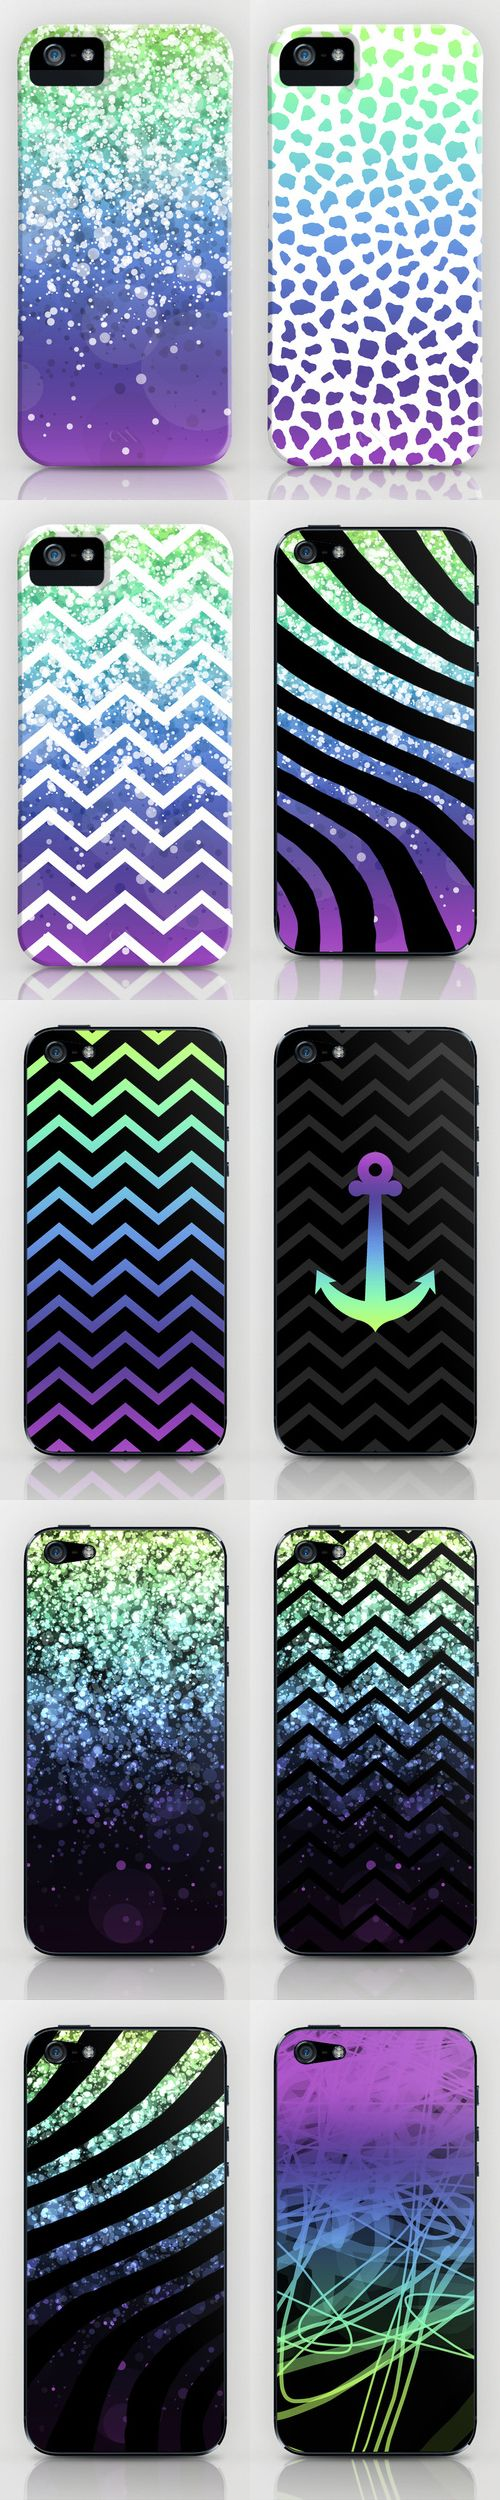 Only if i had a iphone. How to add photo that you love to make personalized iPhone 6/ 6S case cover http://www.zazzle.com/cuteiphone6cases/iphone+6+cases?ps=128&qs=iphone%206%20cases&dp=252480905934073059&sr=250849706063379605&cg=196639667158713580&pg=1&rf=238478323816001889&tc=diyphonecaseideas